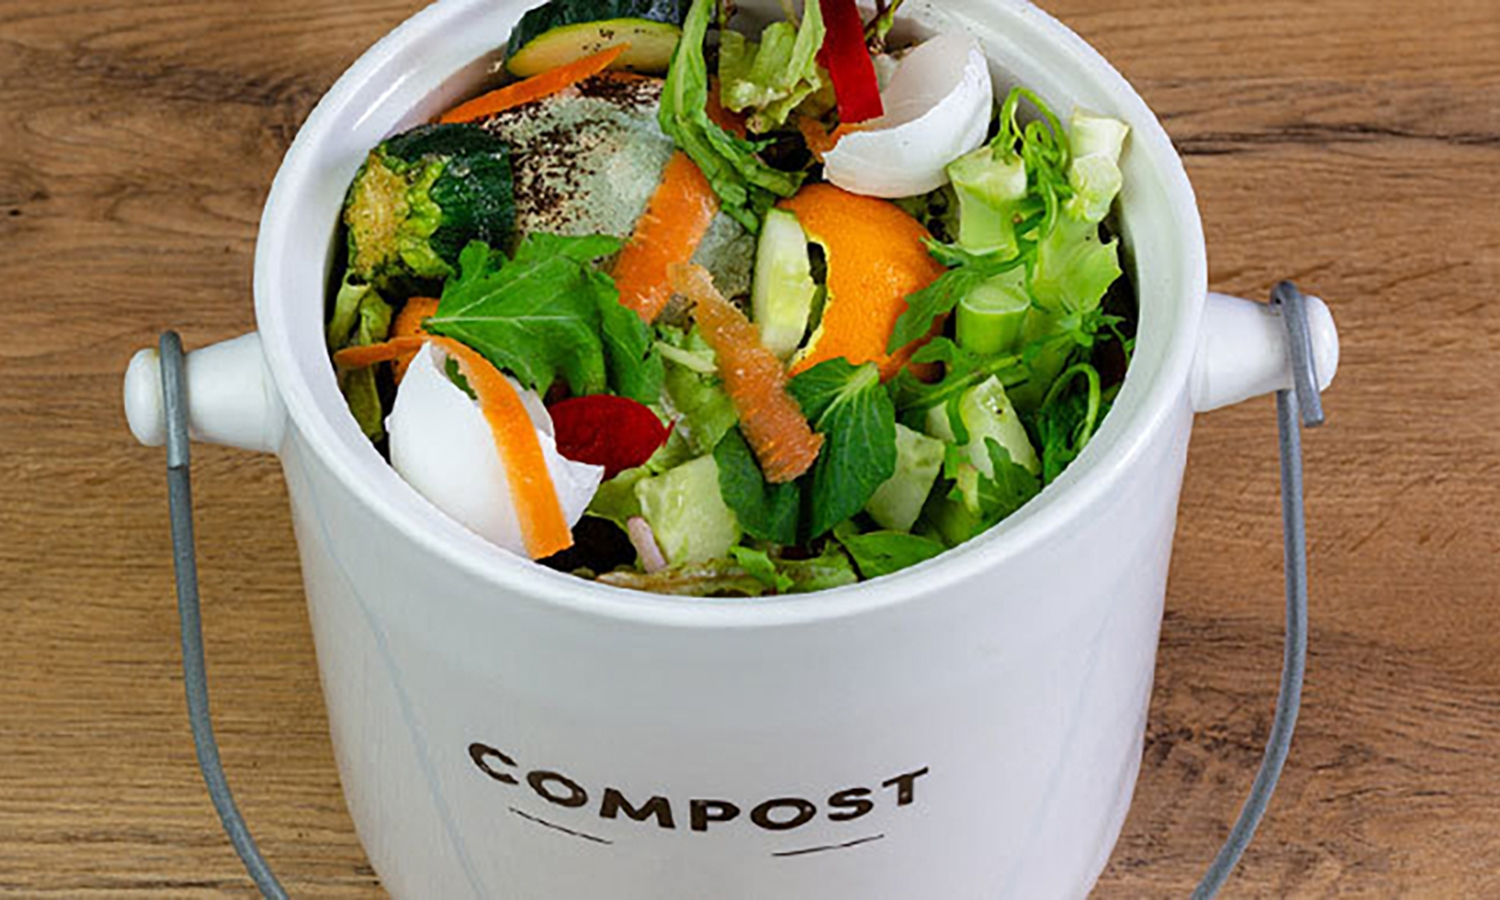 What happened to composting?